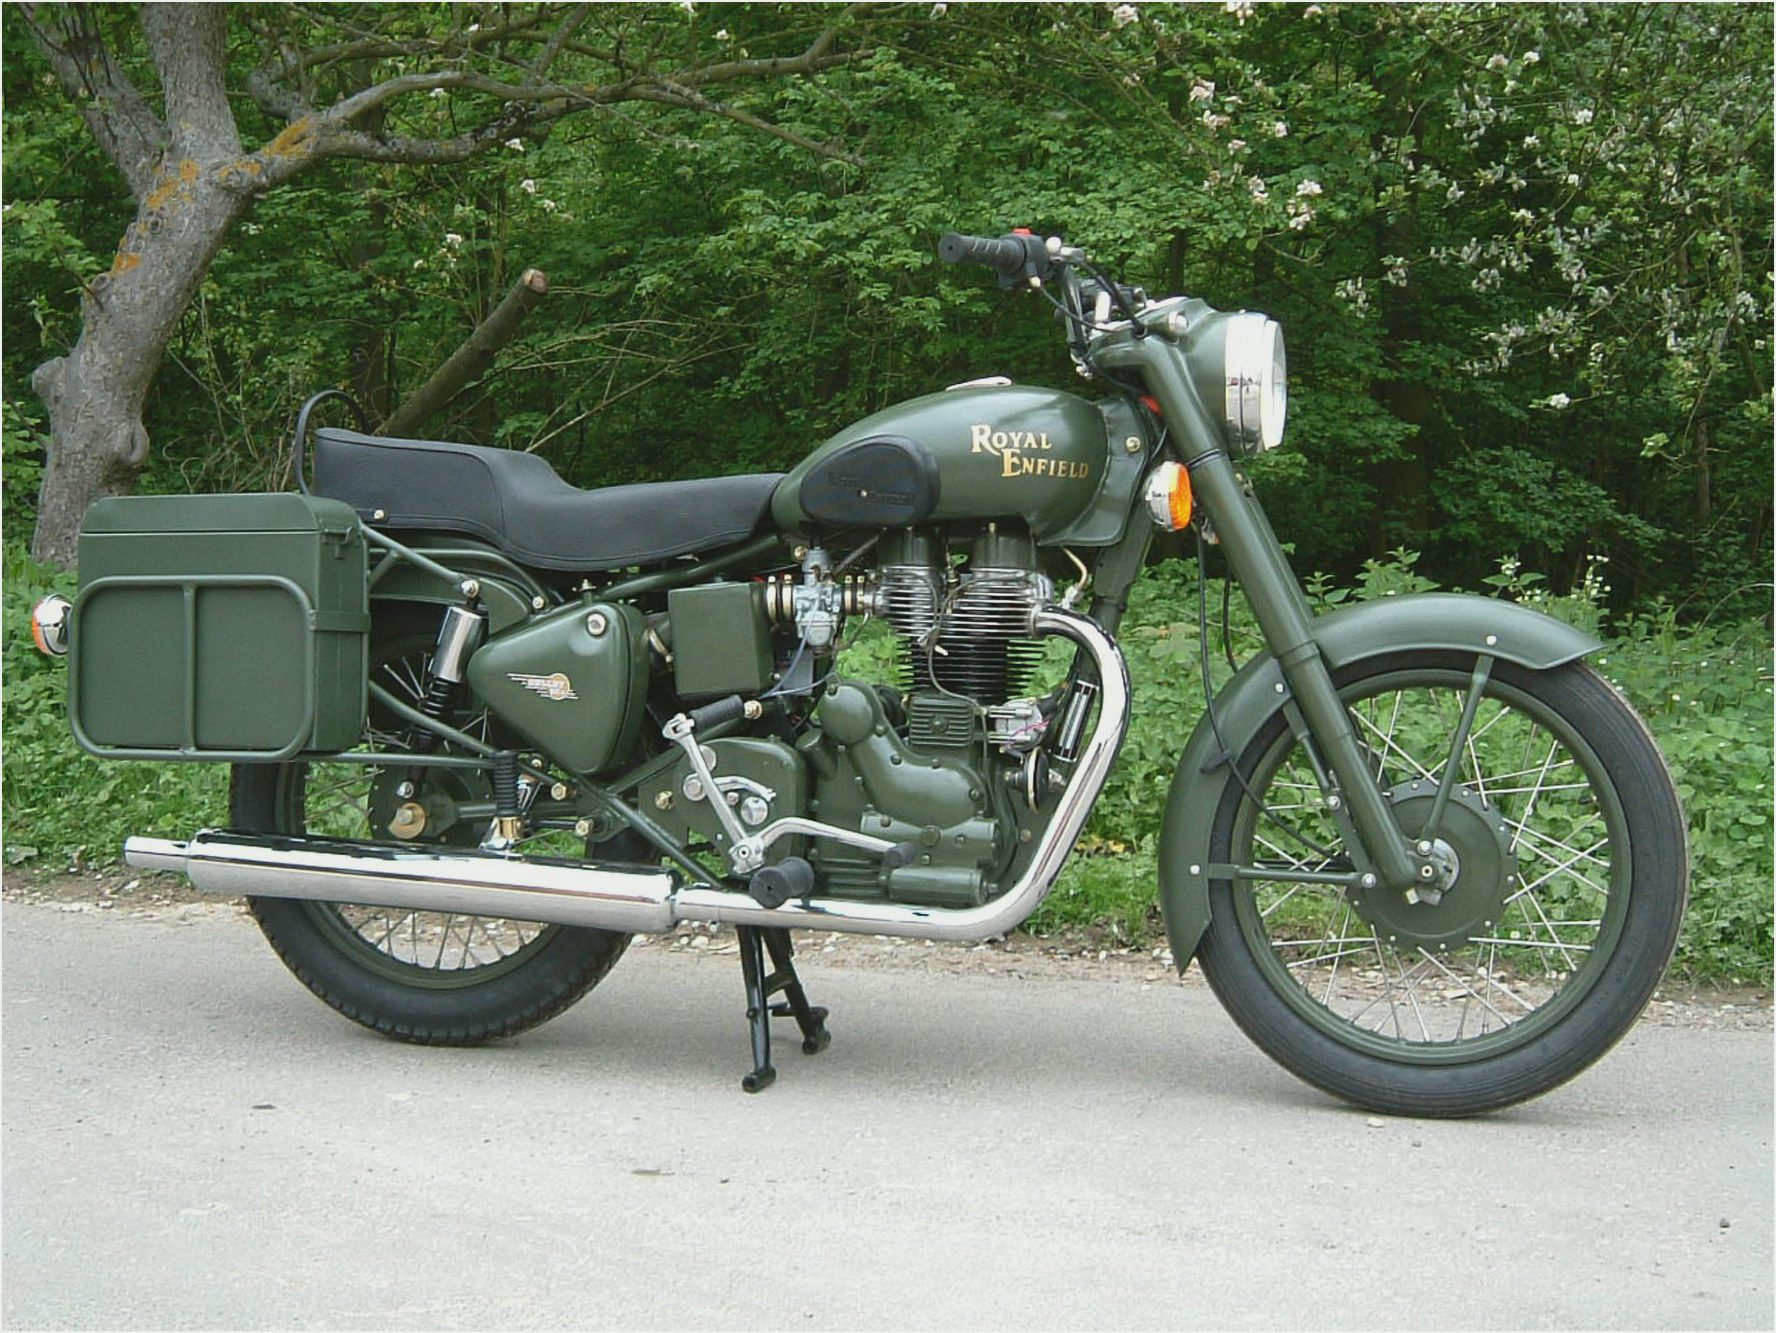 Royal Enfield Bullet 500 Army 1999 images #170675